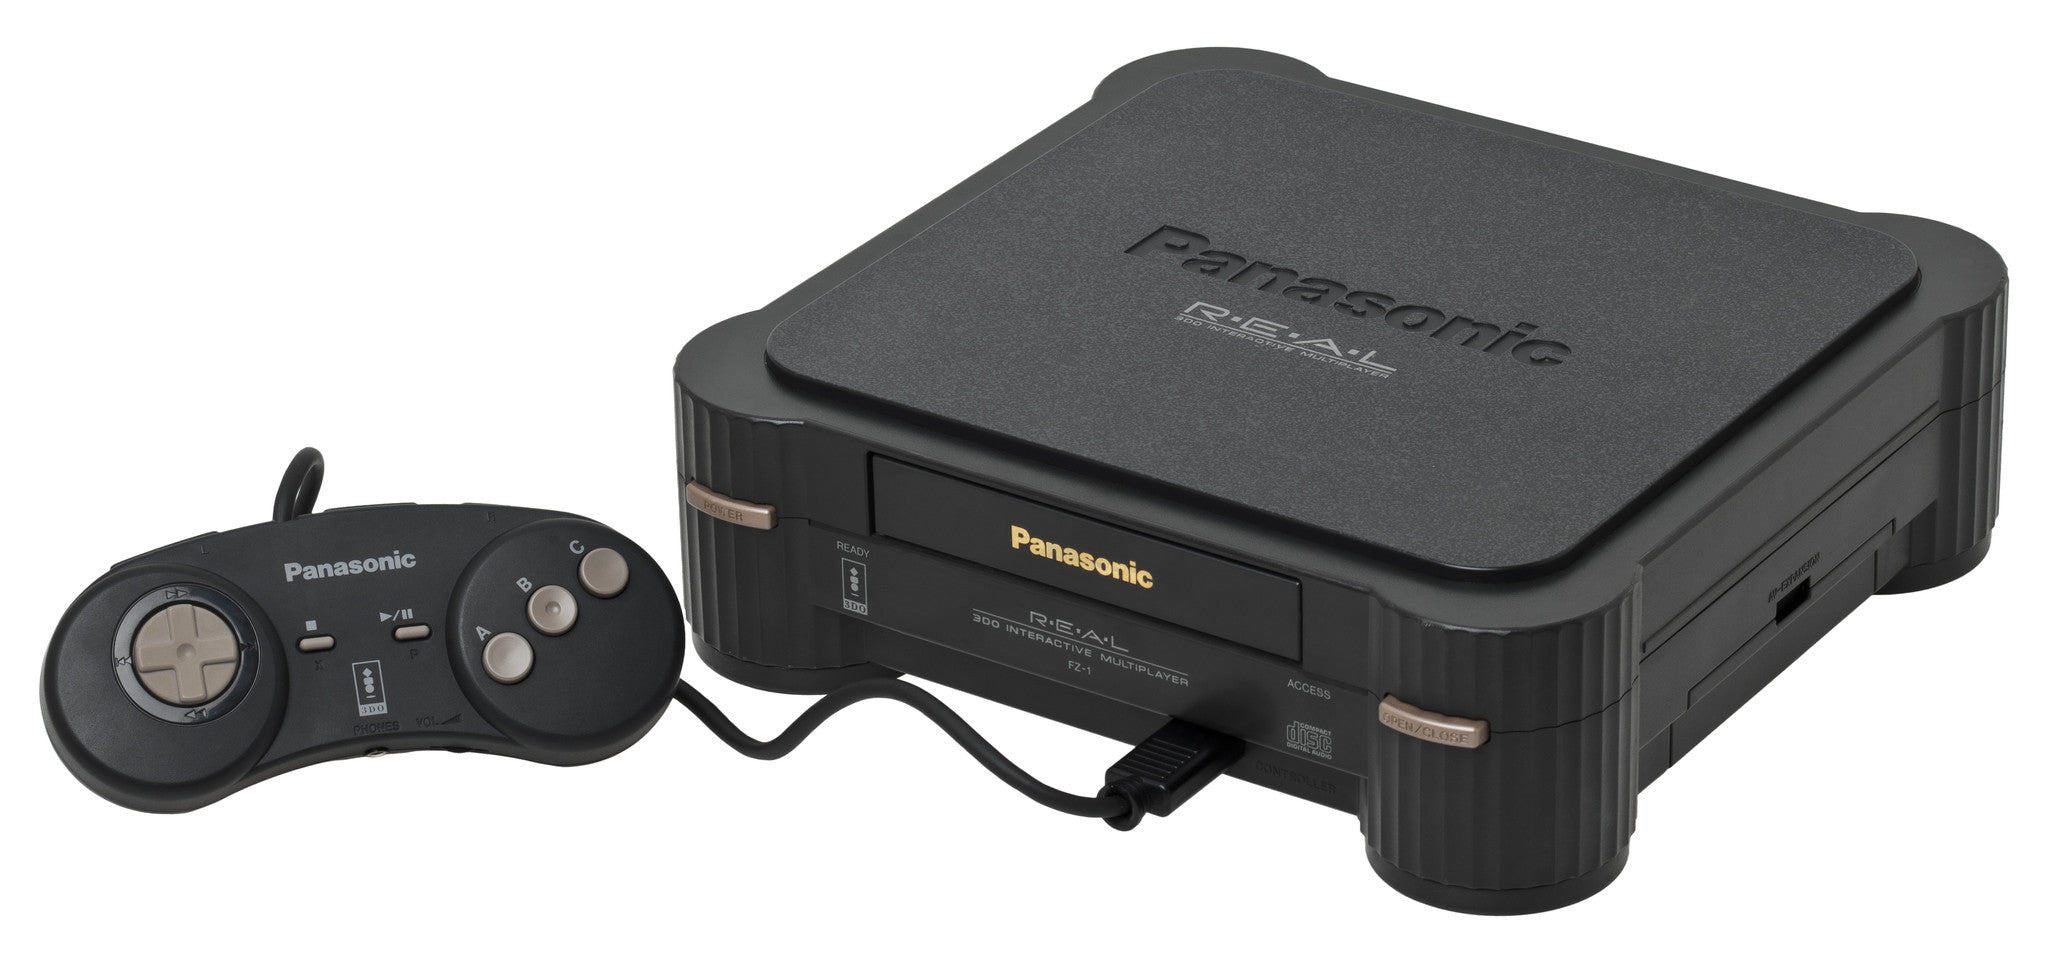 Panasonic 3DO FZ-1 Retropixl Retrogaming retro gaming Rare Console Collector Limited Edition Japan Import